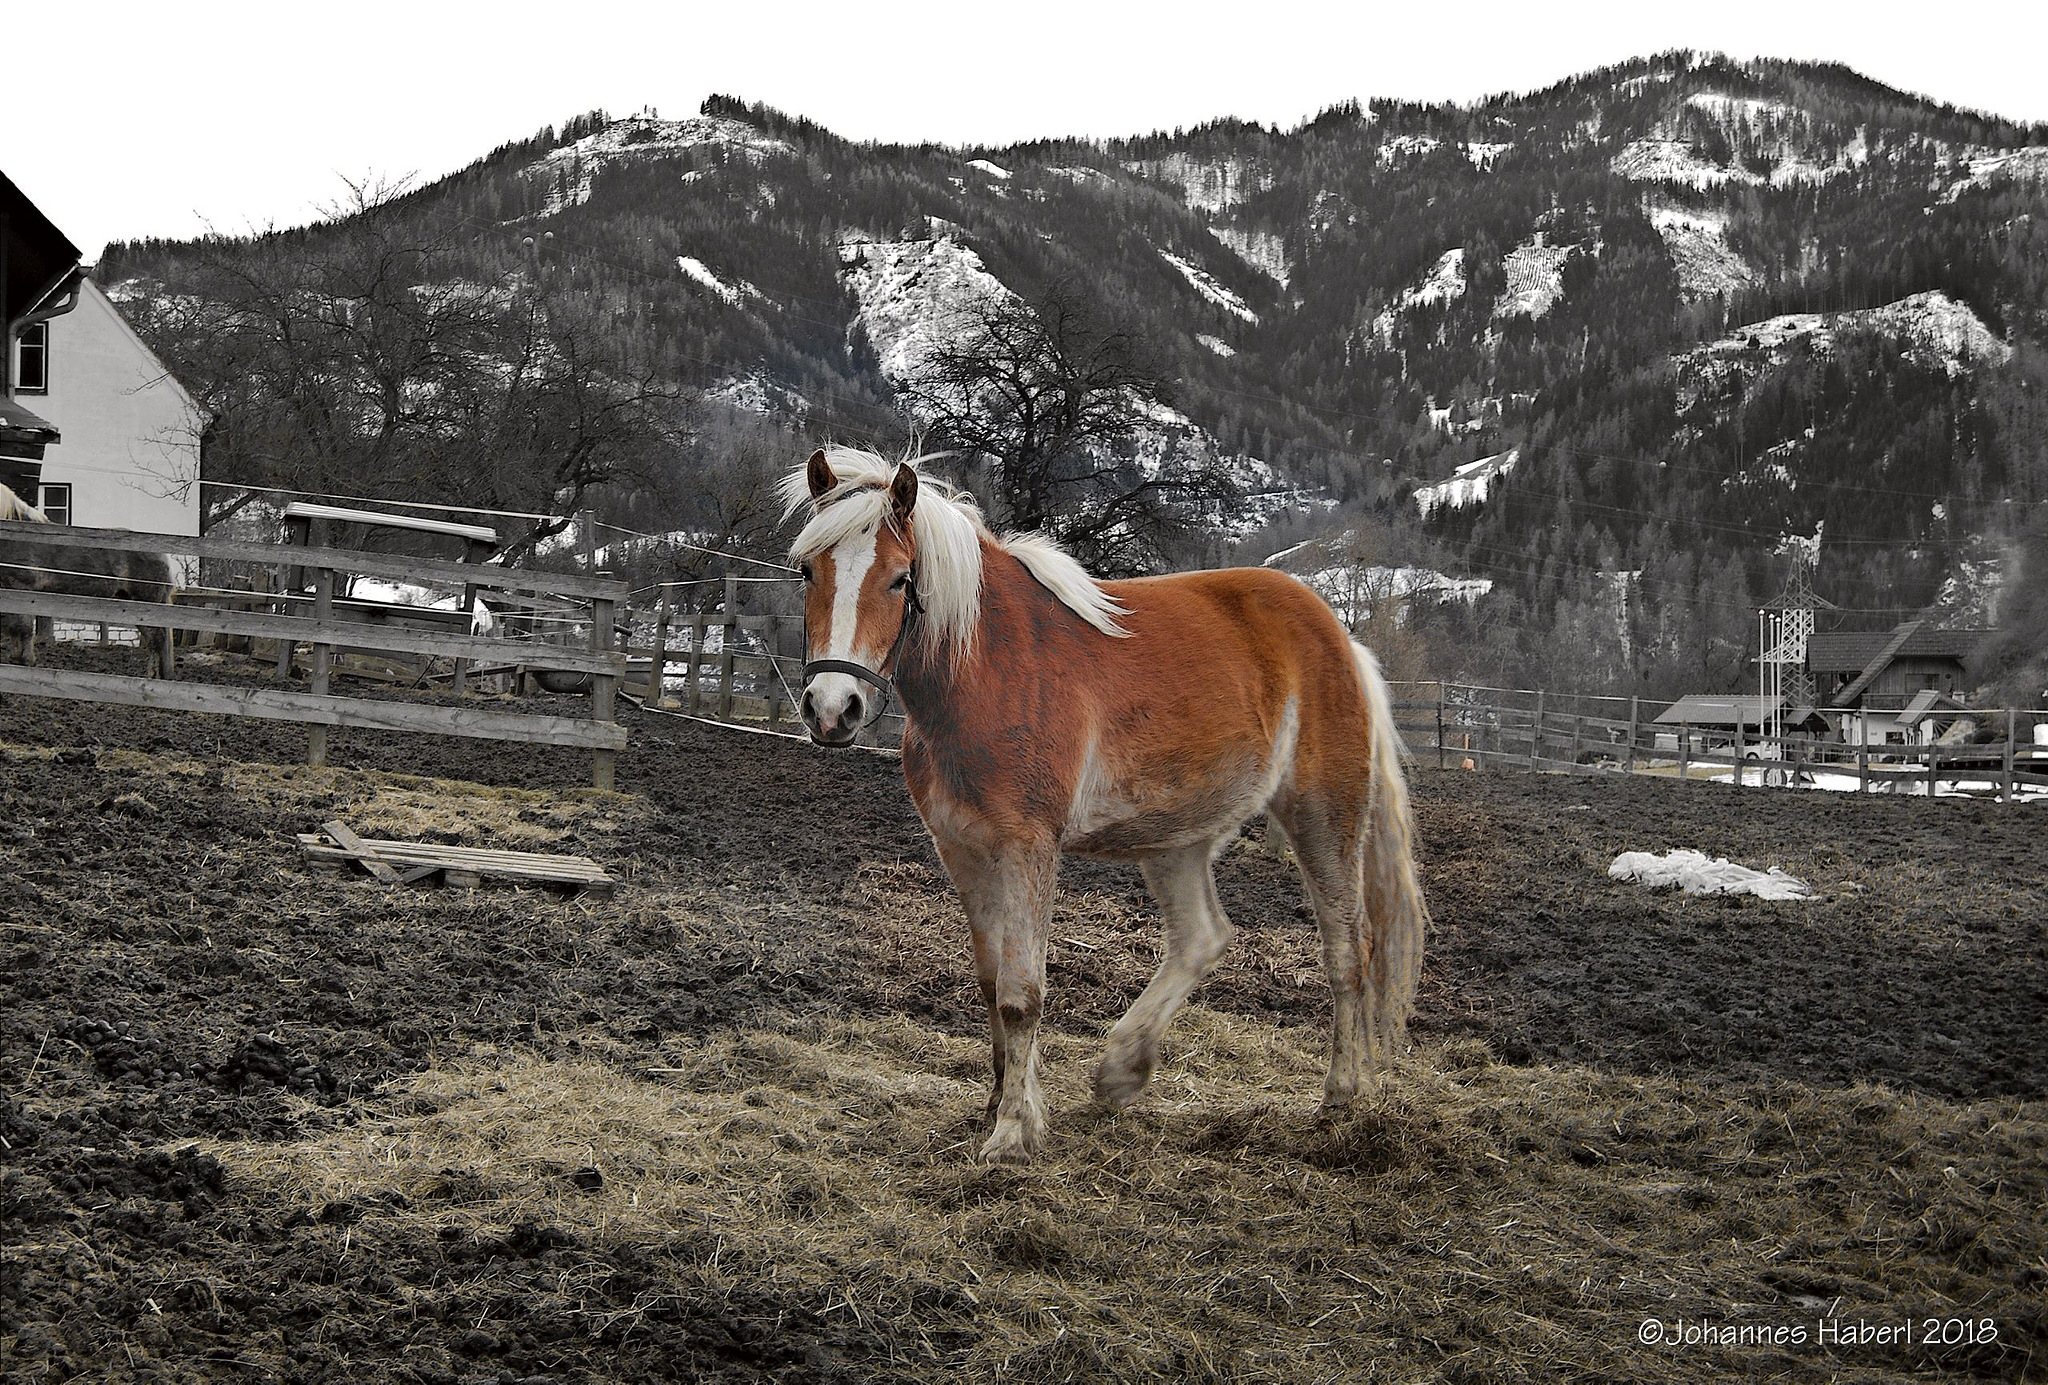 horse & landscape / B&W + color by Johannes Haberl